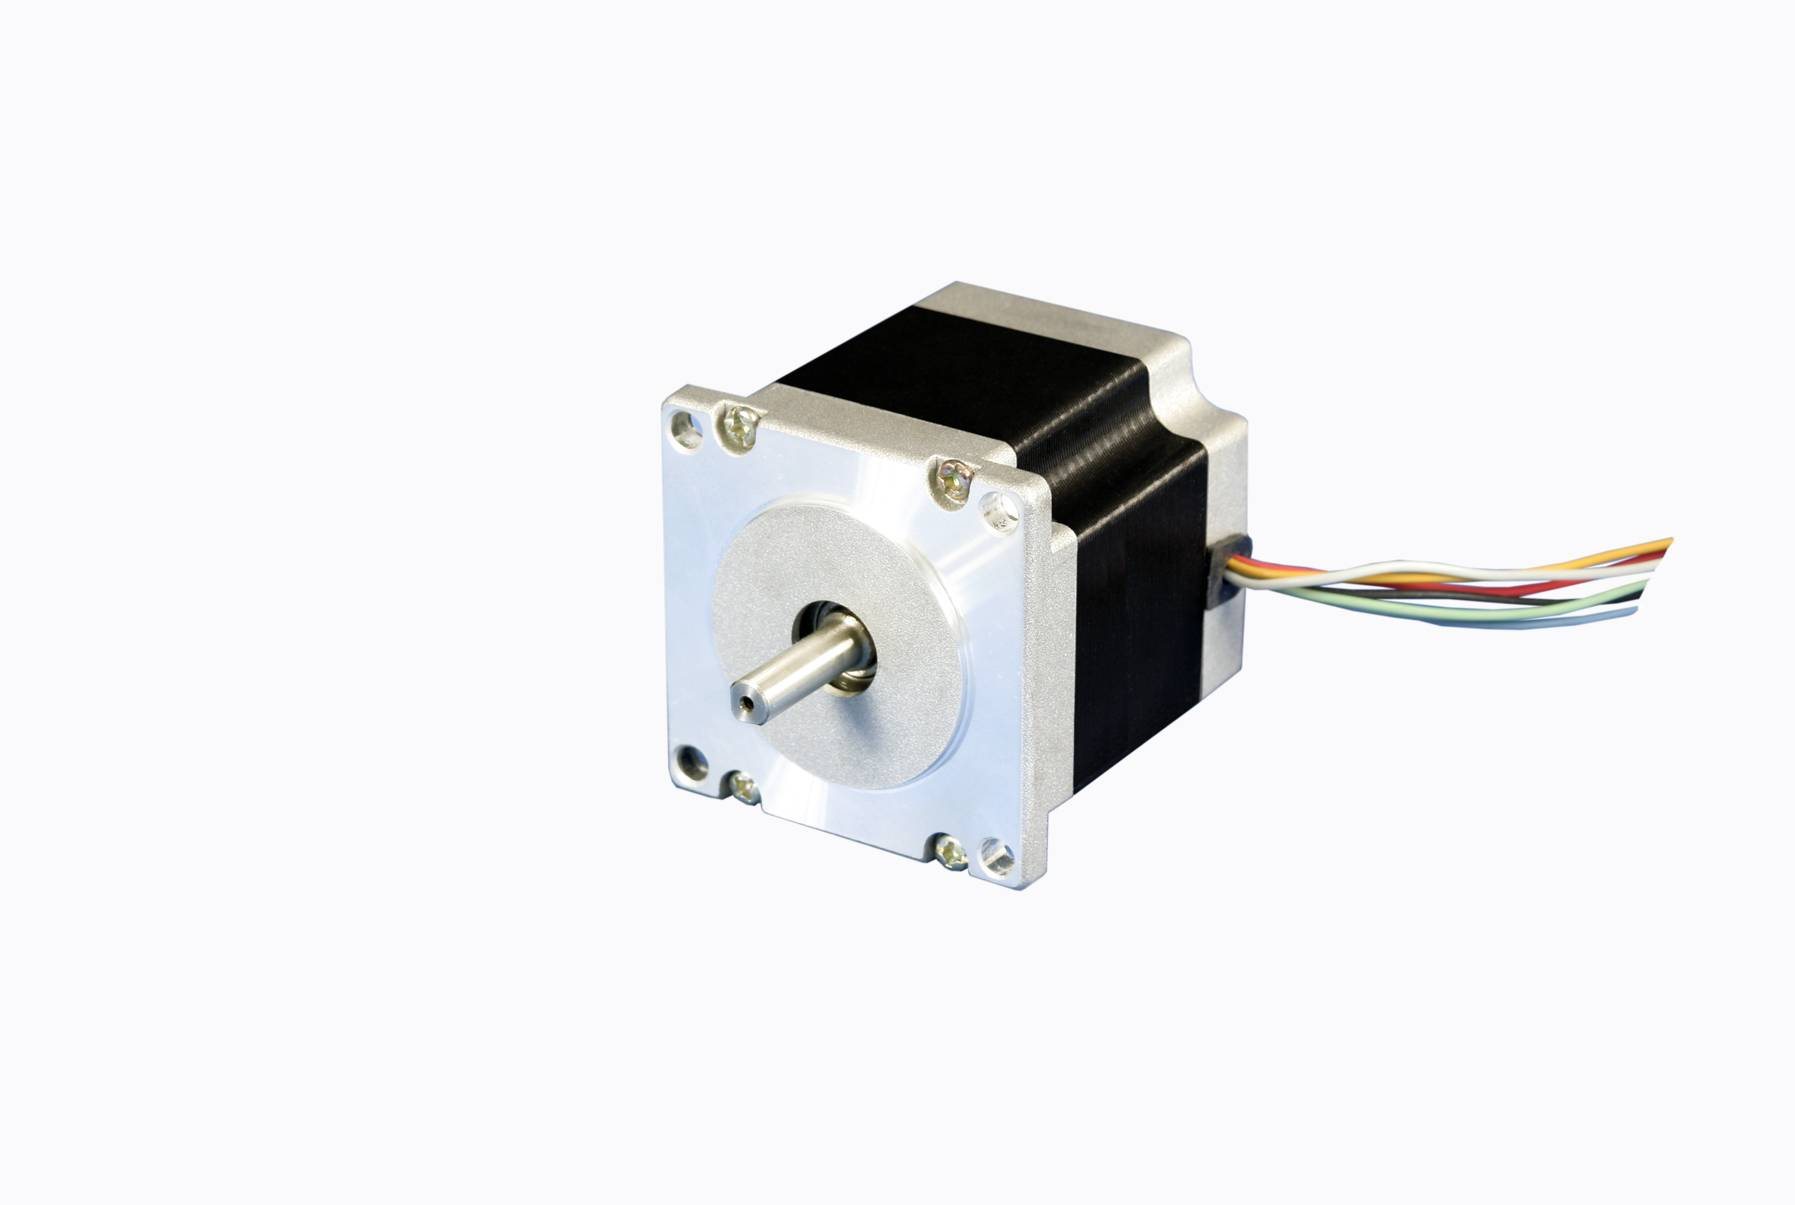 Nema 23 Stepper motor 4.2 A 3.0 Nm 112 mm